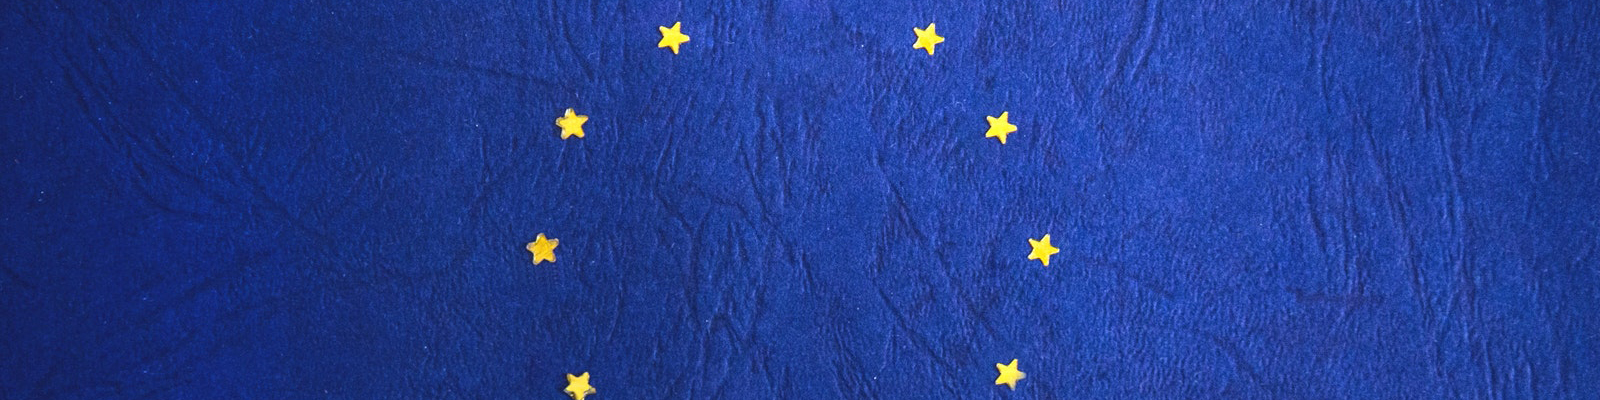 EU flag Brexit header